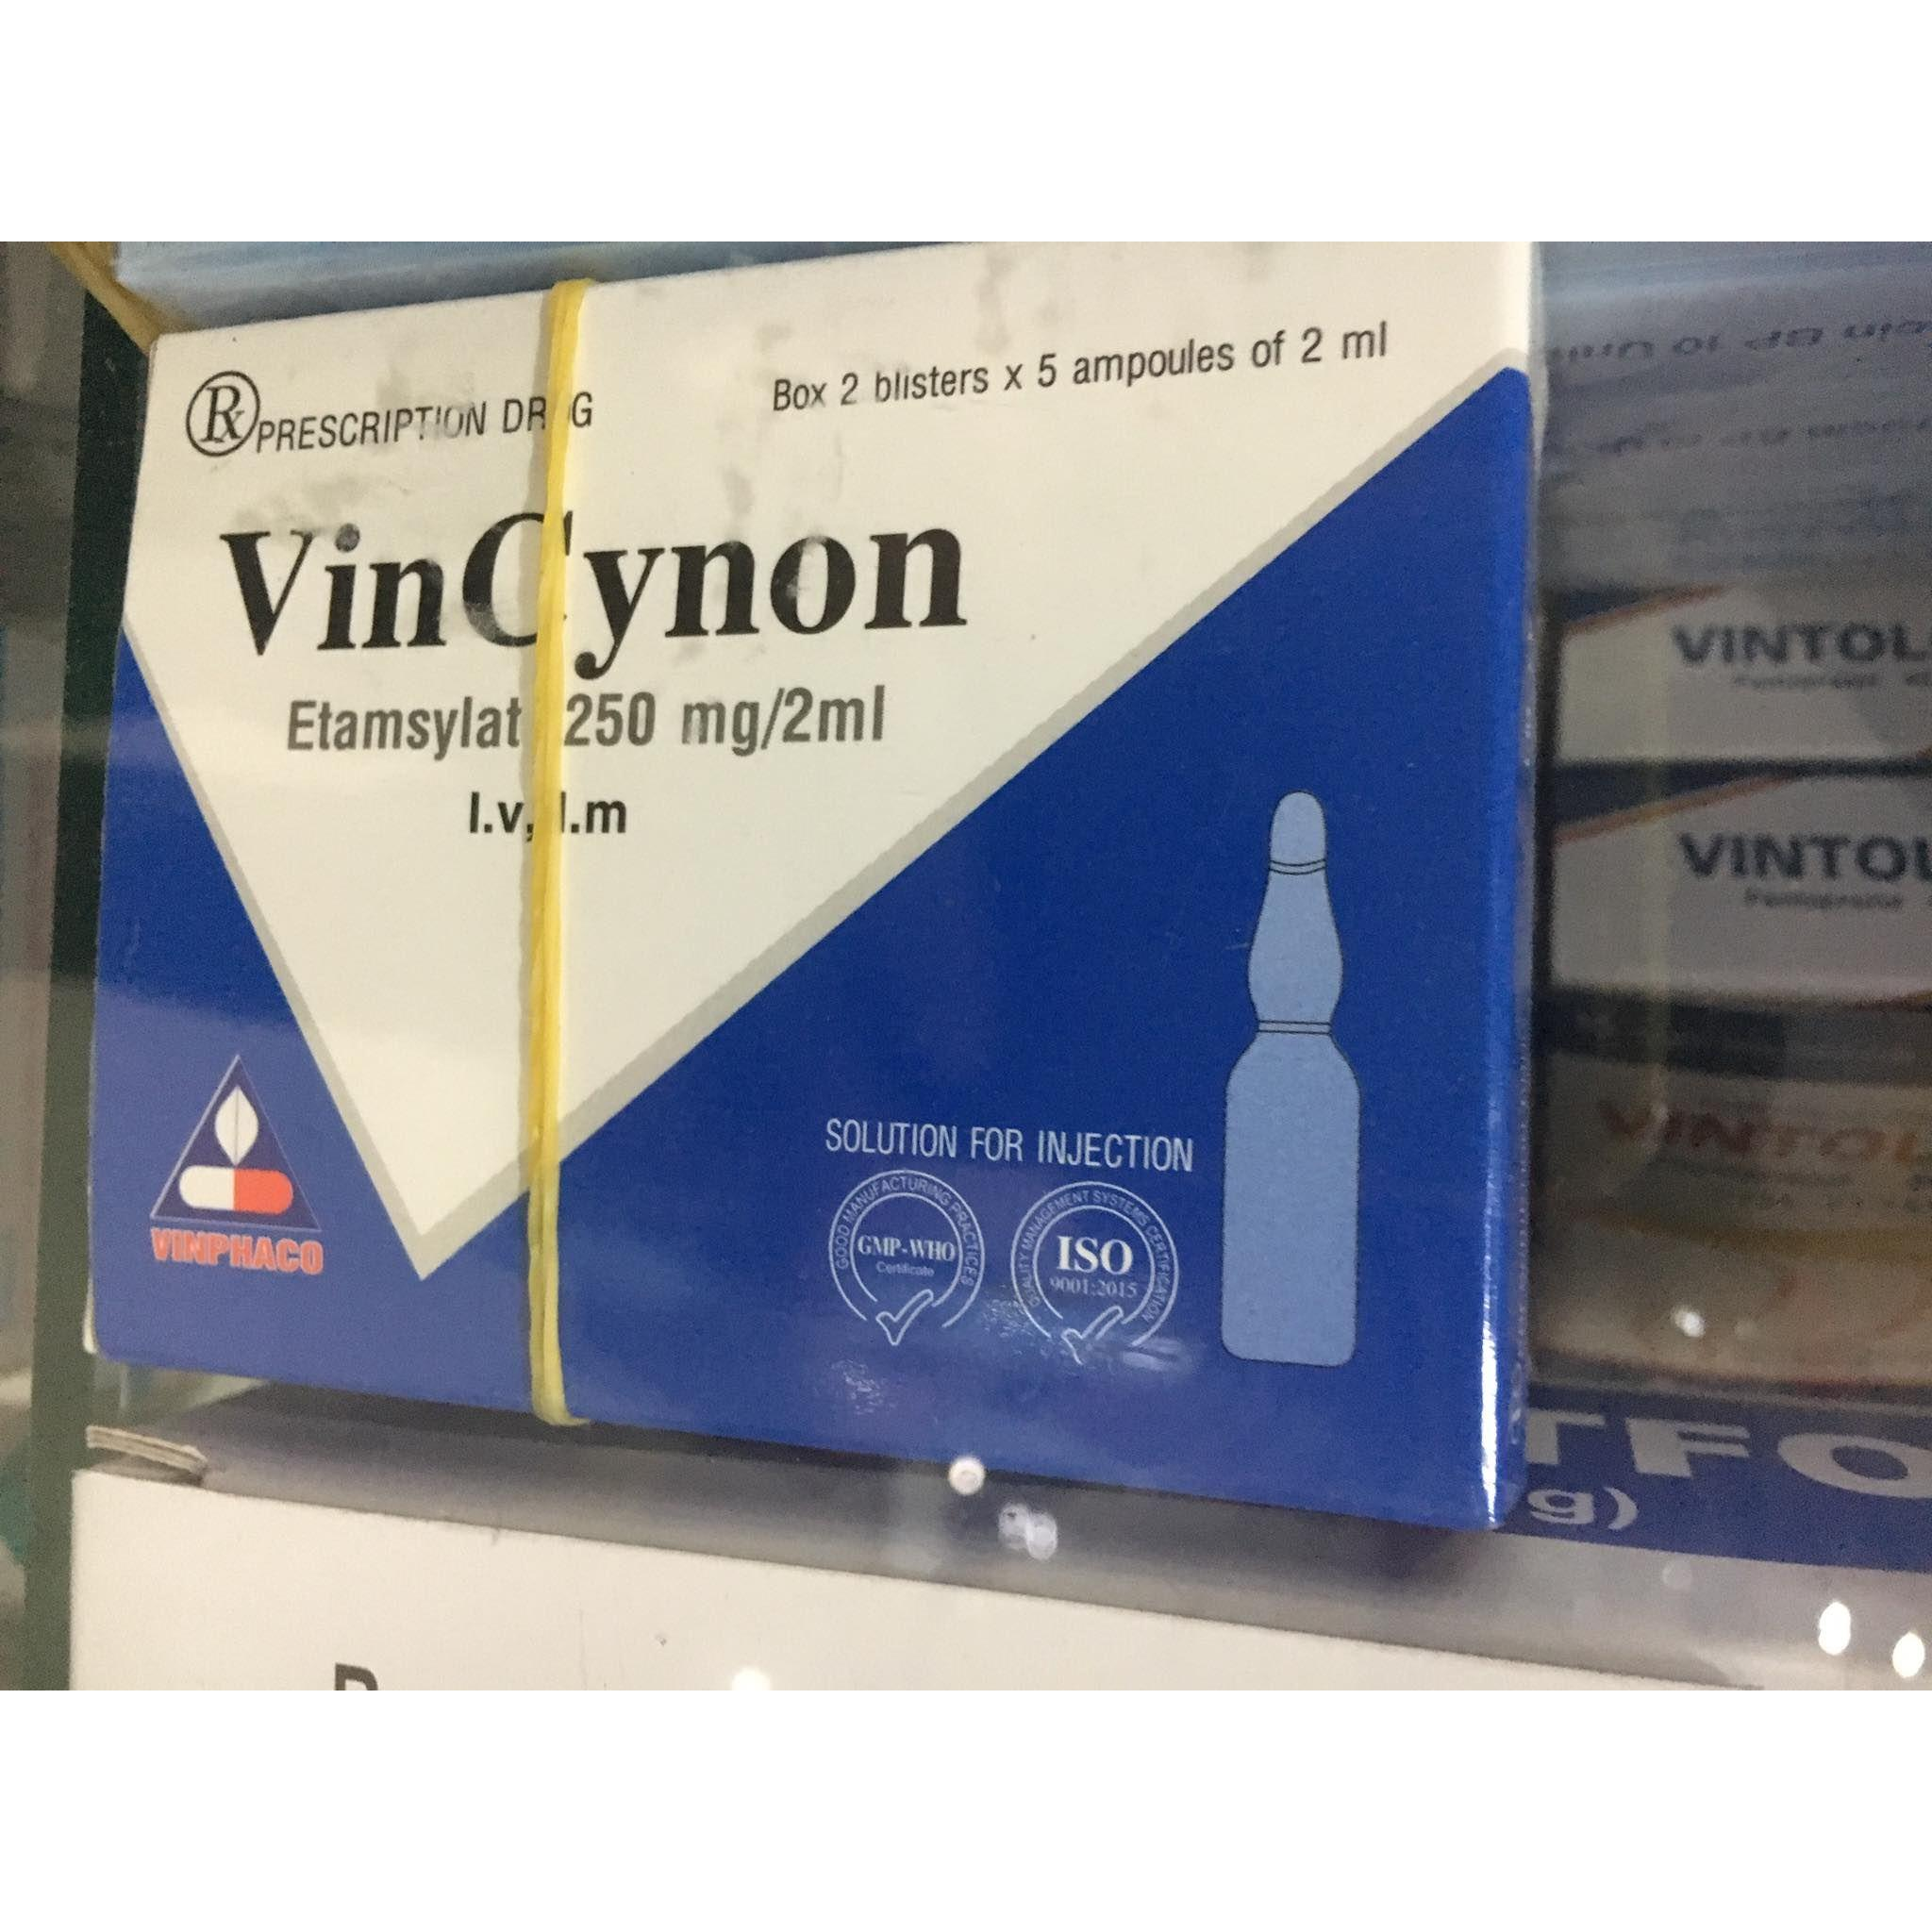 Vincynon 250mg/2ml